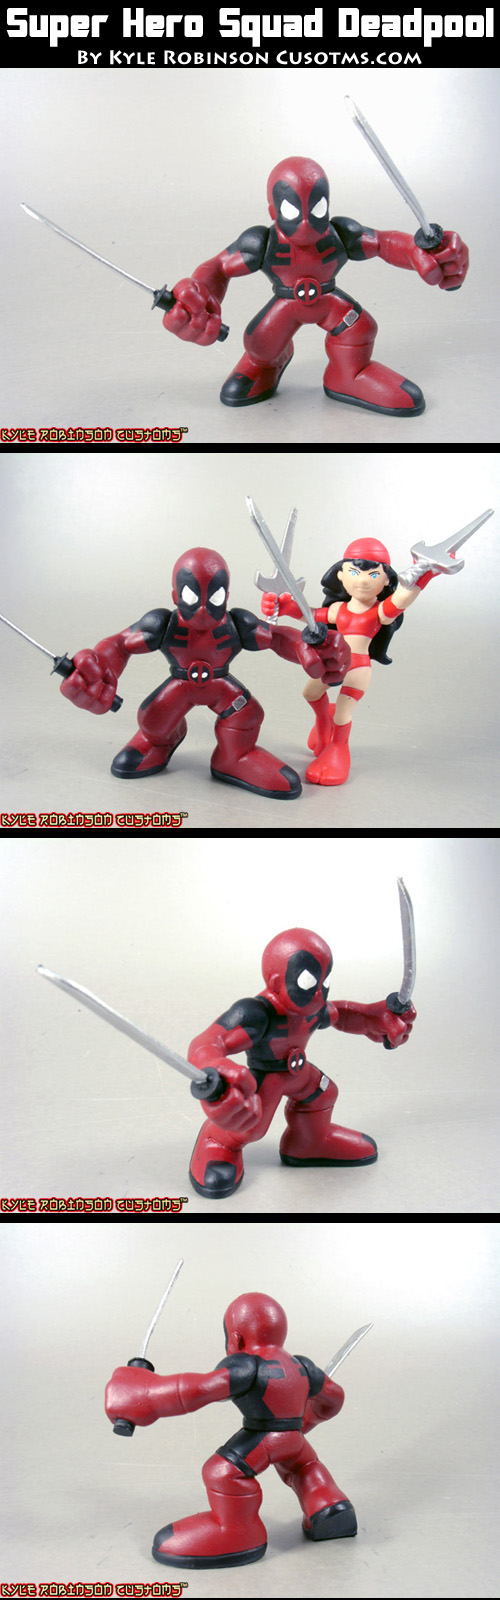 Super Hero Squad Deadpool by KyleRobinsonCustoms